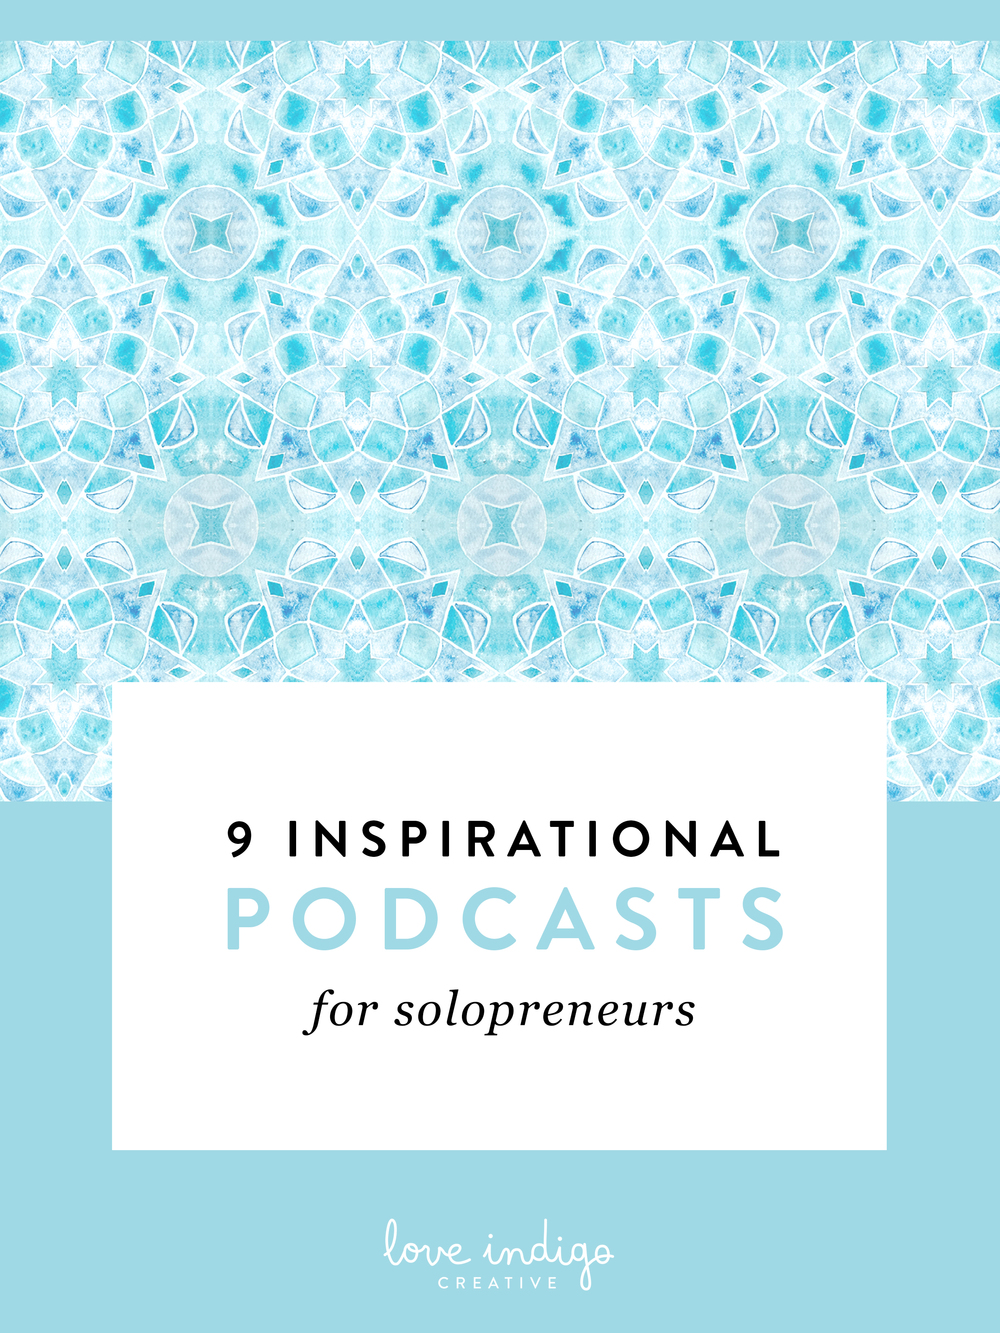 9 Inspirational Podcasts for Solopreneurs | Love Indigo Creative